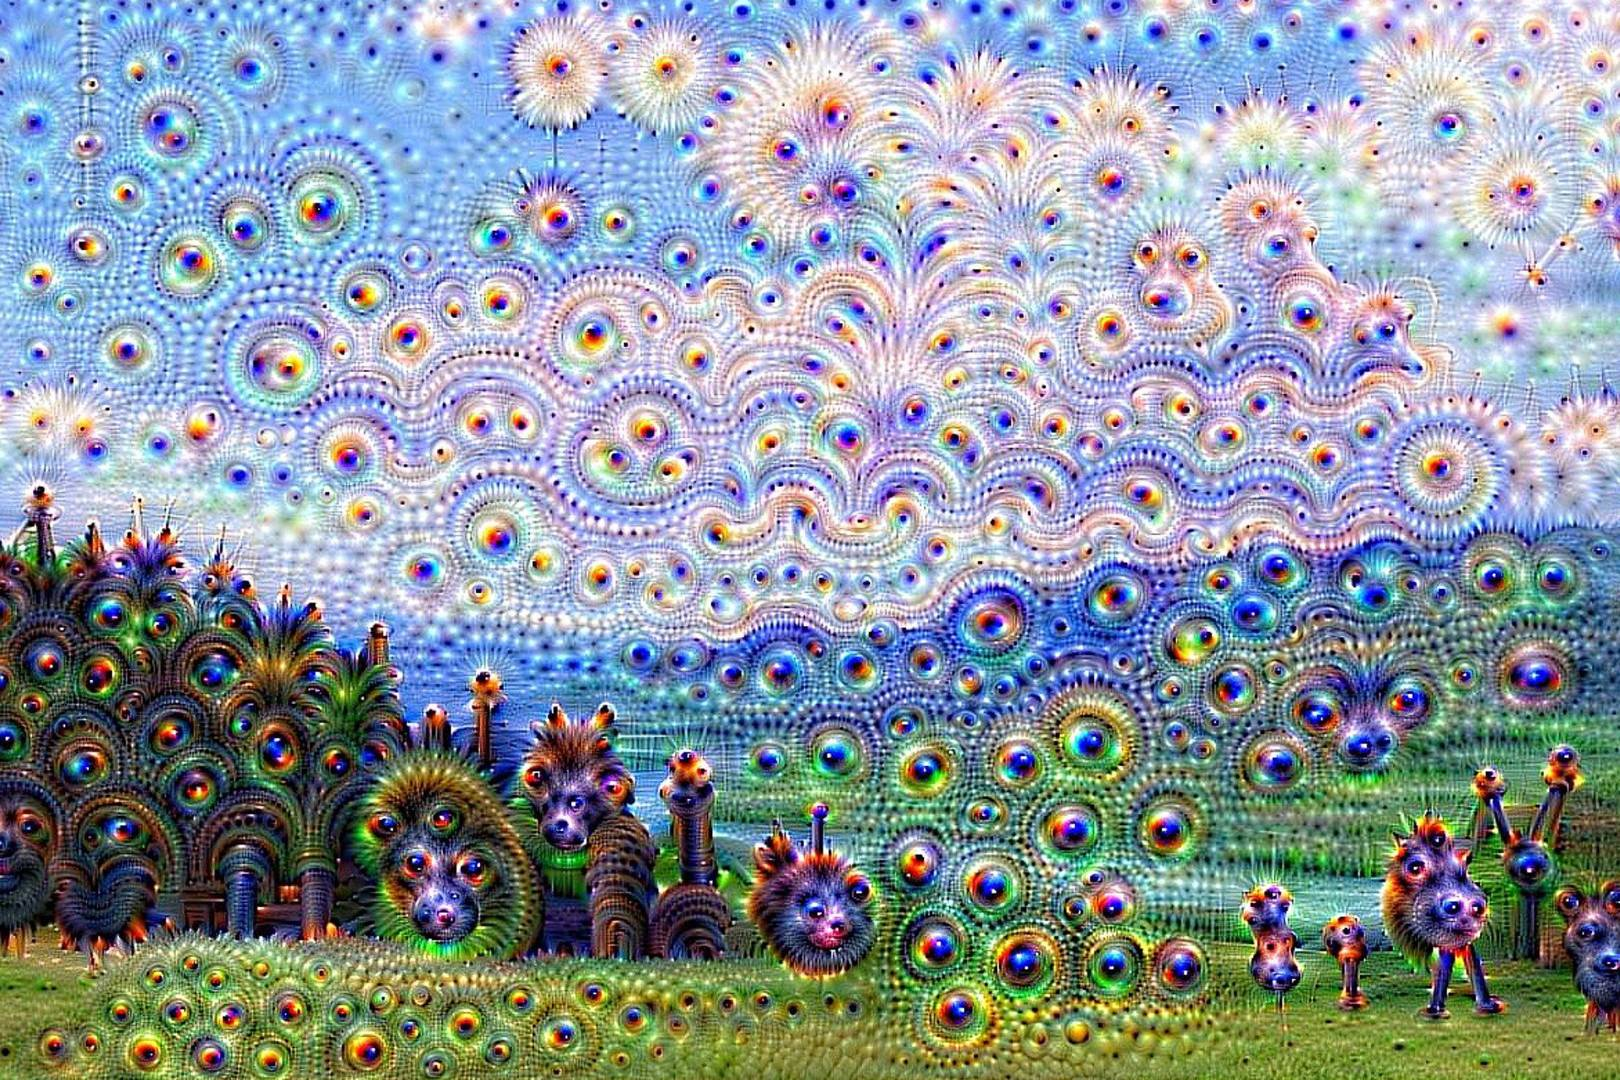 Create your own DeepDream nightmares in seconds | WIRED UK